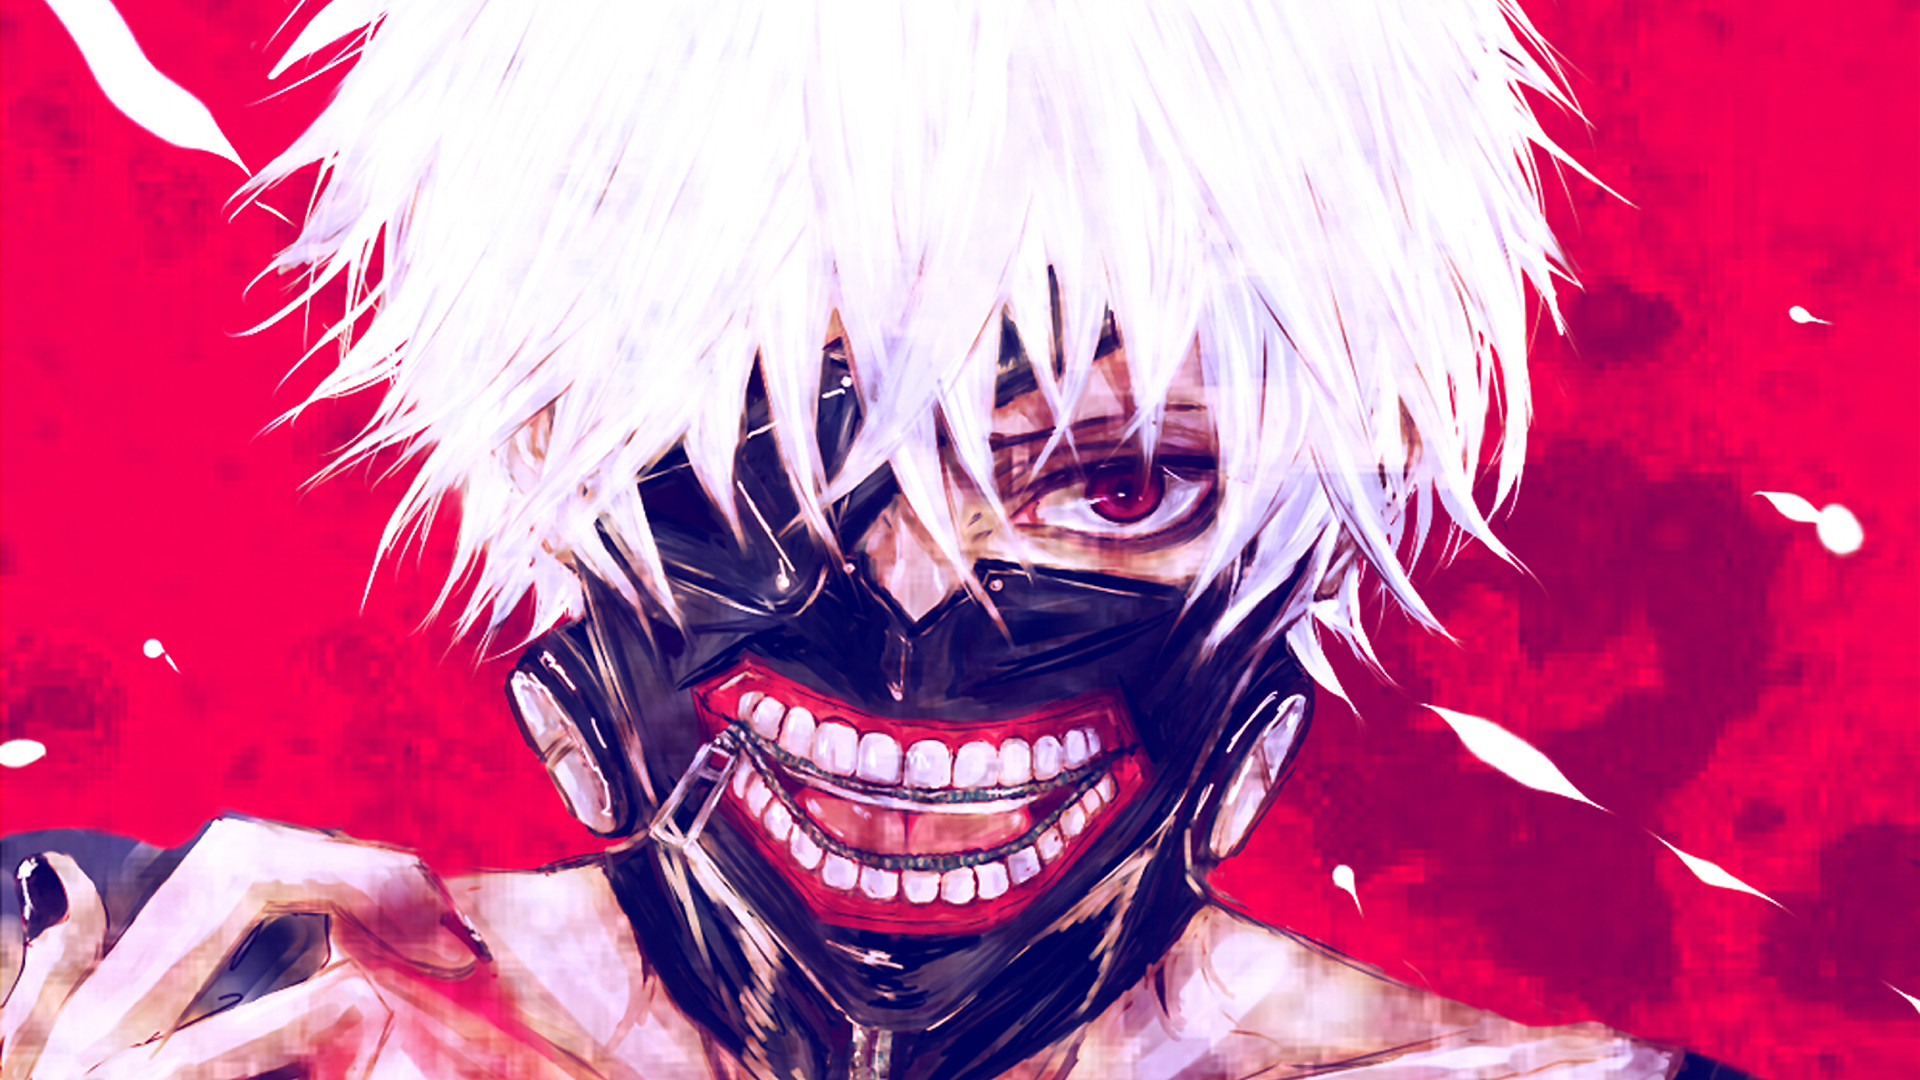 1920x1080 View, download, comment, and rate this  Tokyo Ghoul Wallpaper -  Wallpaper Abyss